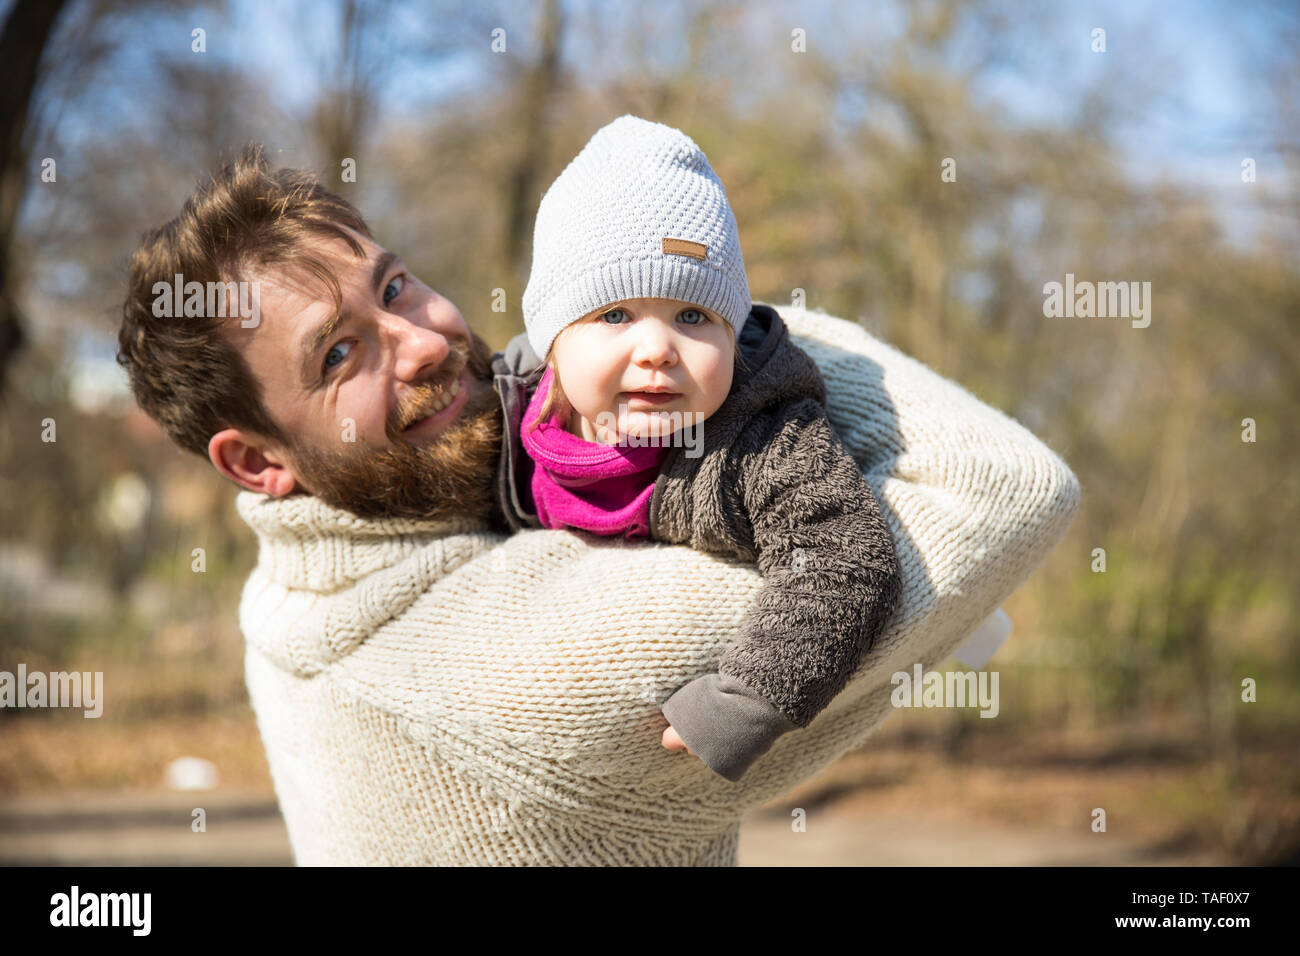 Portrait of happy father carrying daughter in park - Stock Image